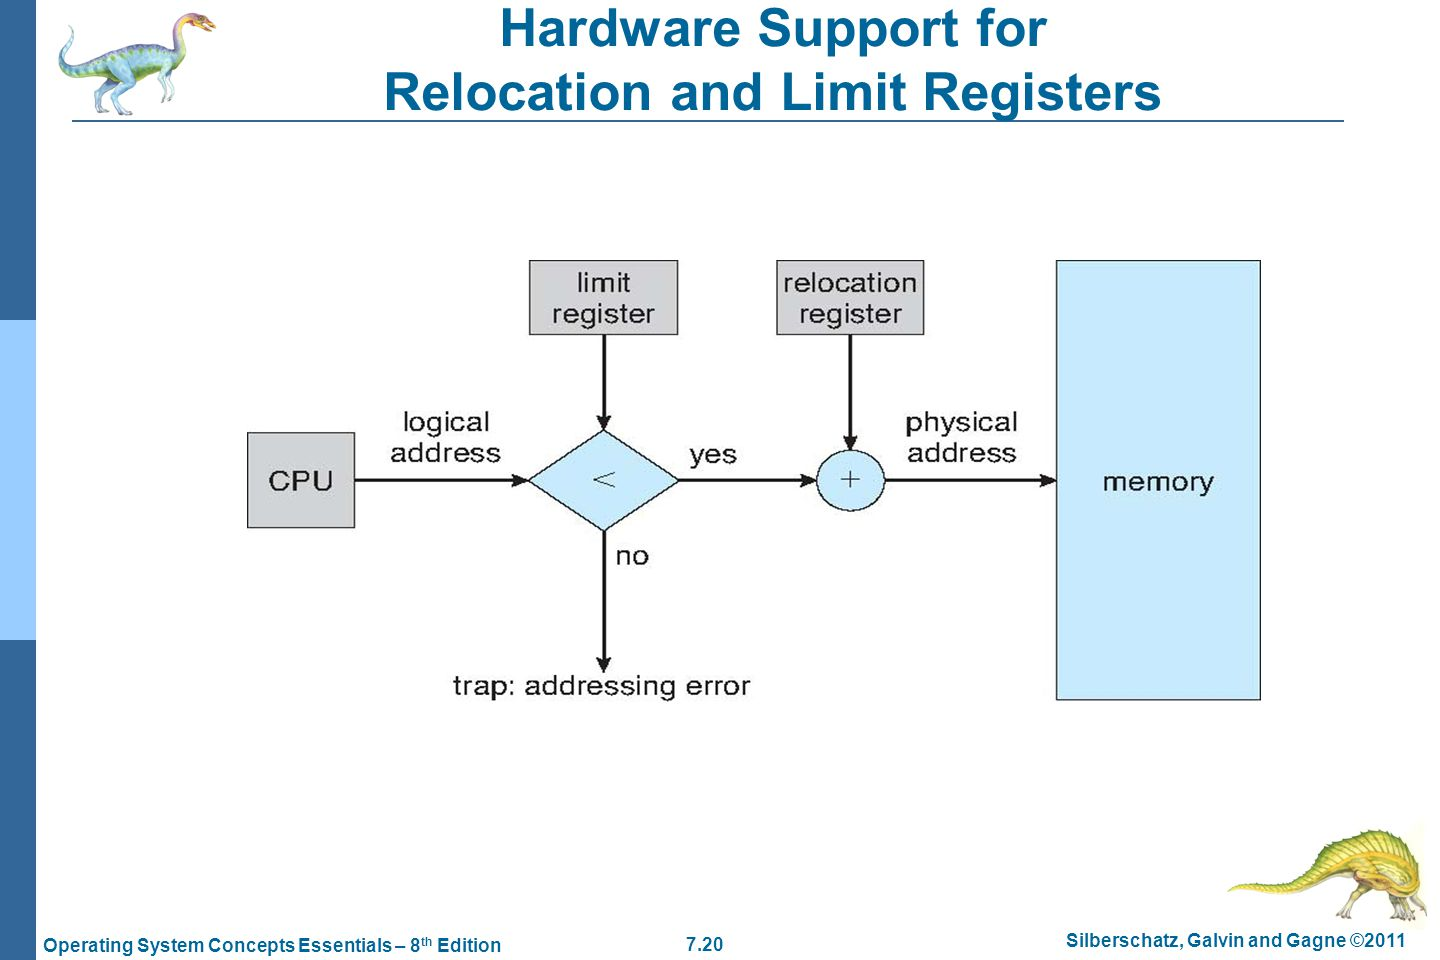 7.20 Silberschatz, Galvin and Gagne ©2011 Operating System Concepts Essentials – 8 th Edition Hardware Support for Relocation and Limit Registers